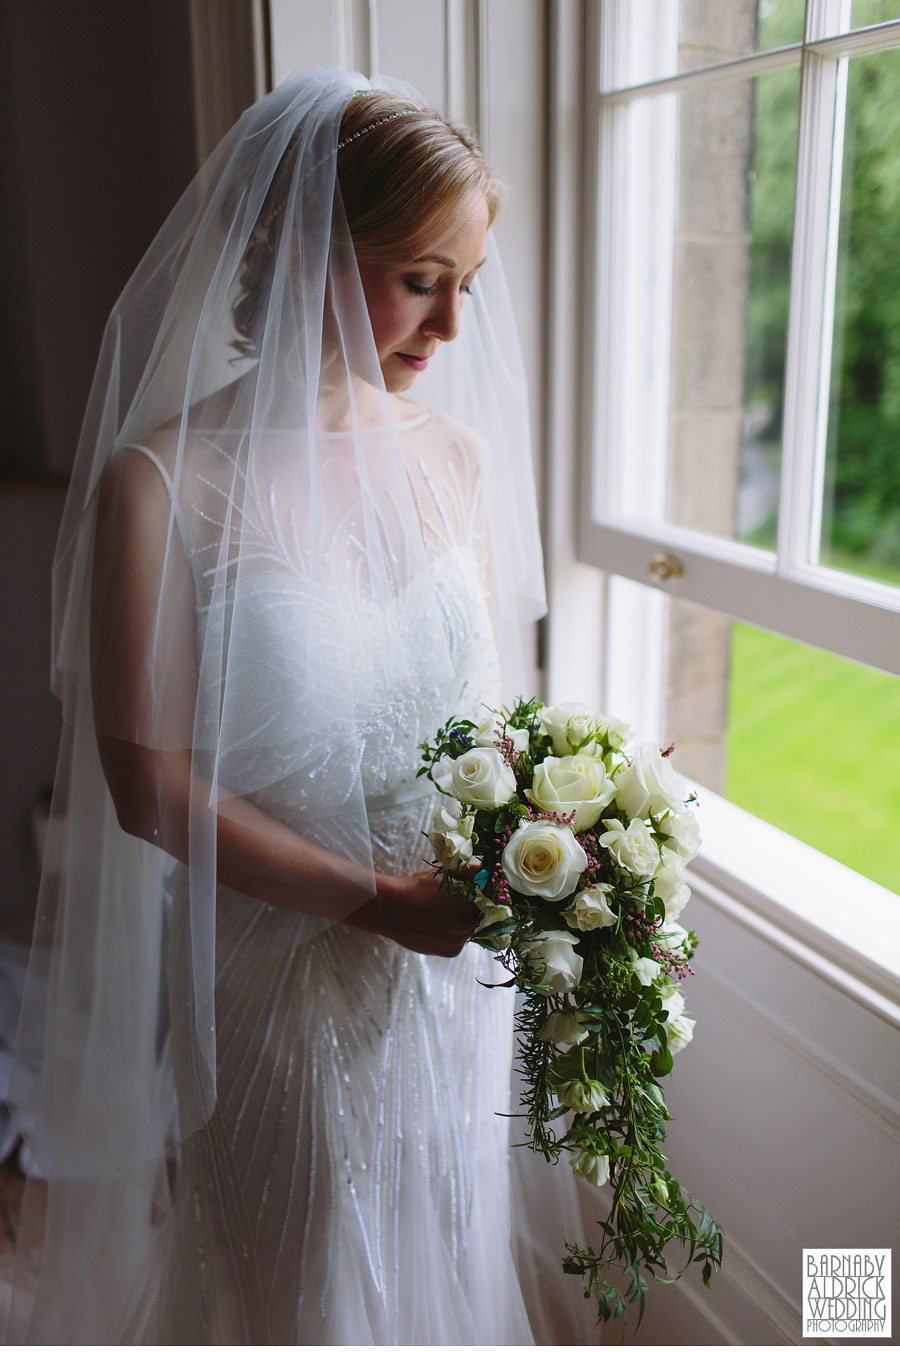 Taitlands Wedding Photography near Settle in The Yorkshire Dales 027